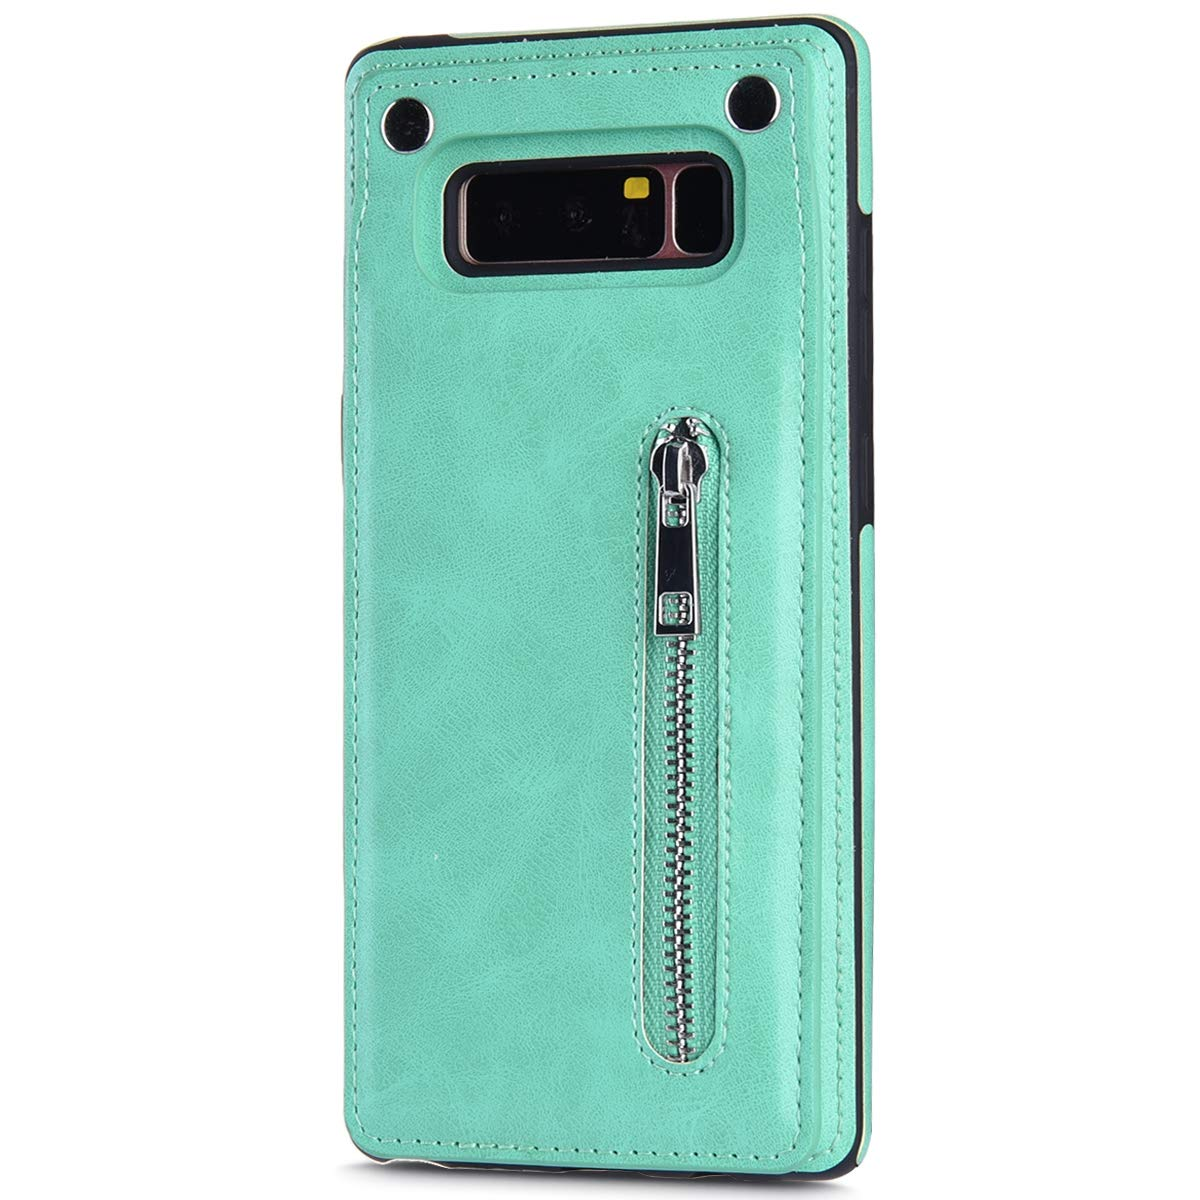 Case for Galaxy Note 8 Flip Case Premium PU Leather Wallet Cover with Card Holder Money Pocket Durable Shockproof Protective Cover for Galaxy Note 8,Mint Green by ikasus